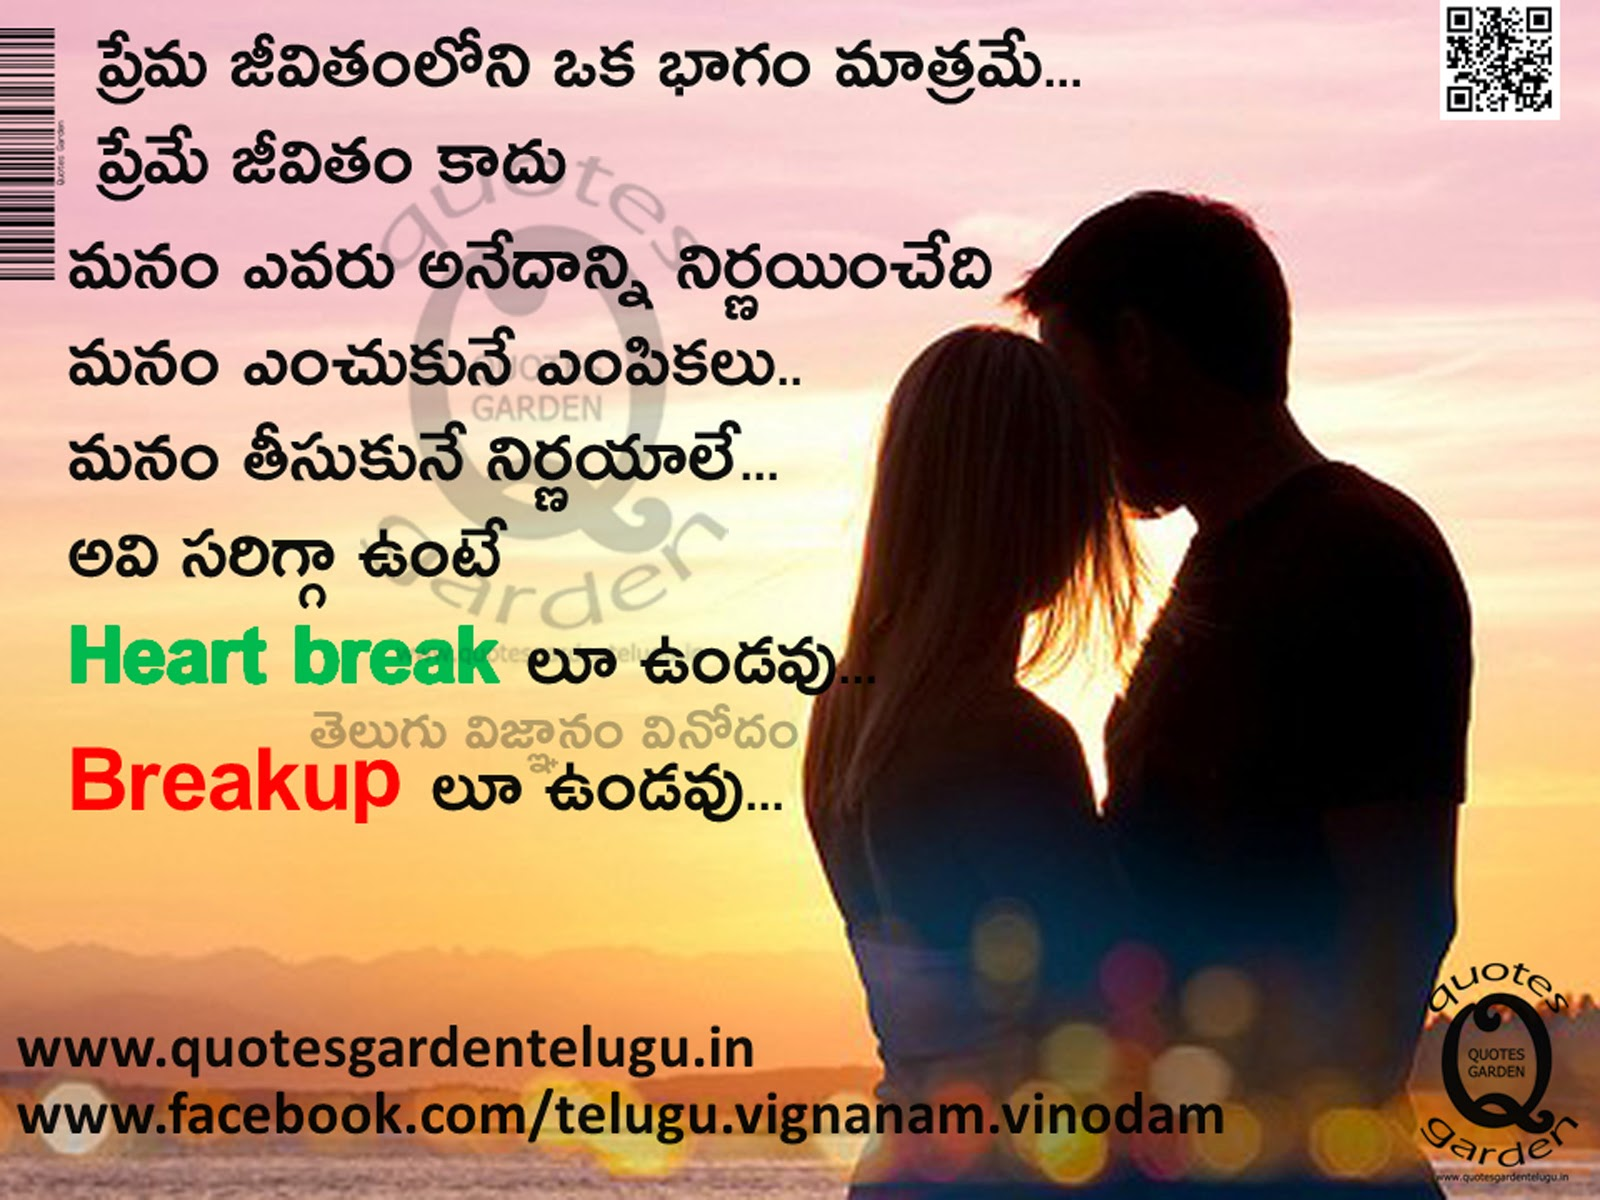 Telugu Love Quotes Glamorous Telugu Love And Inspirational Quotes  Quotes Garden Telugu